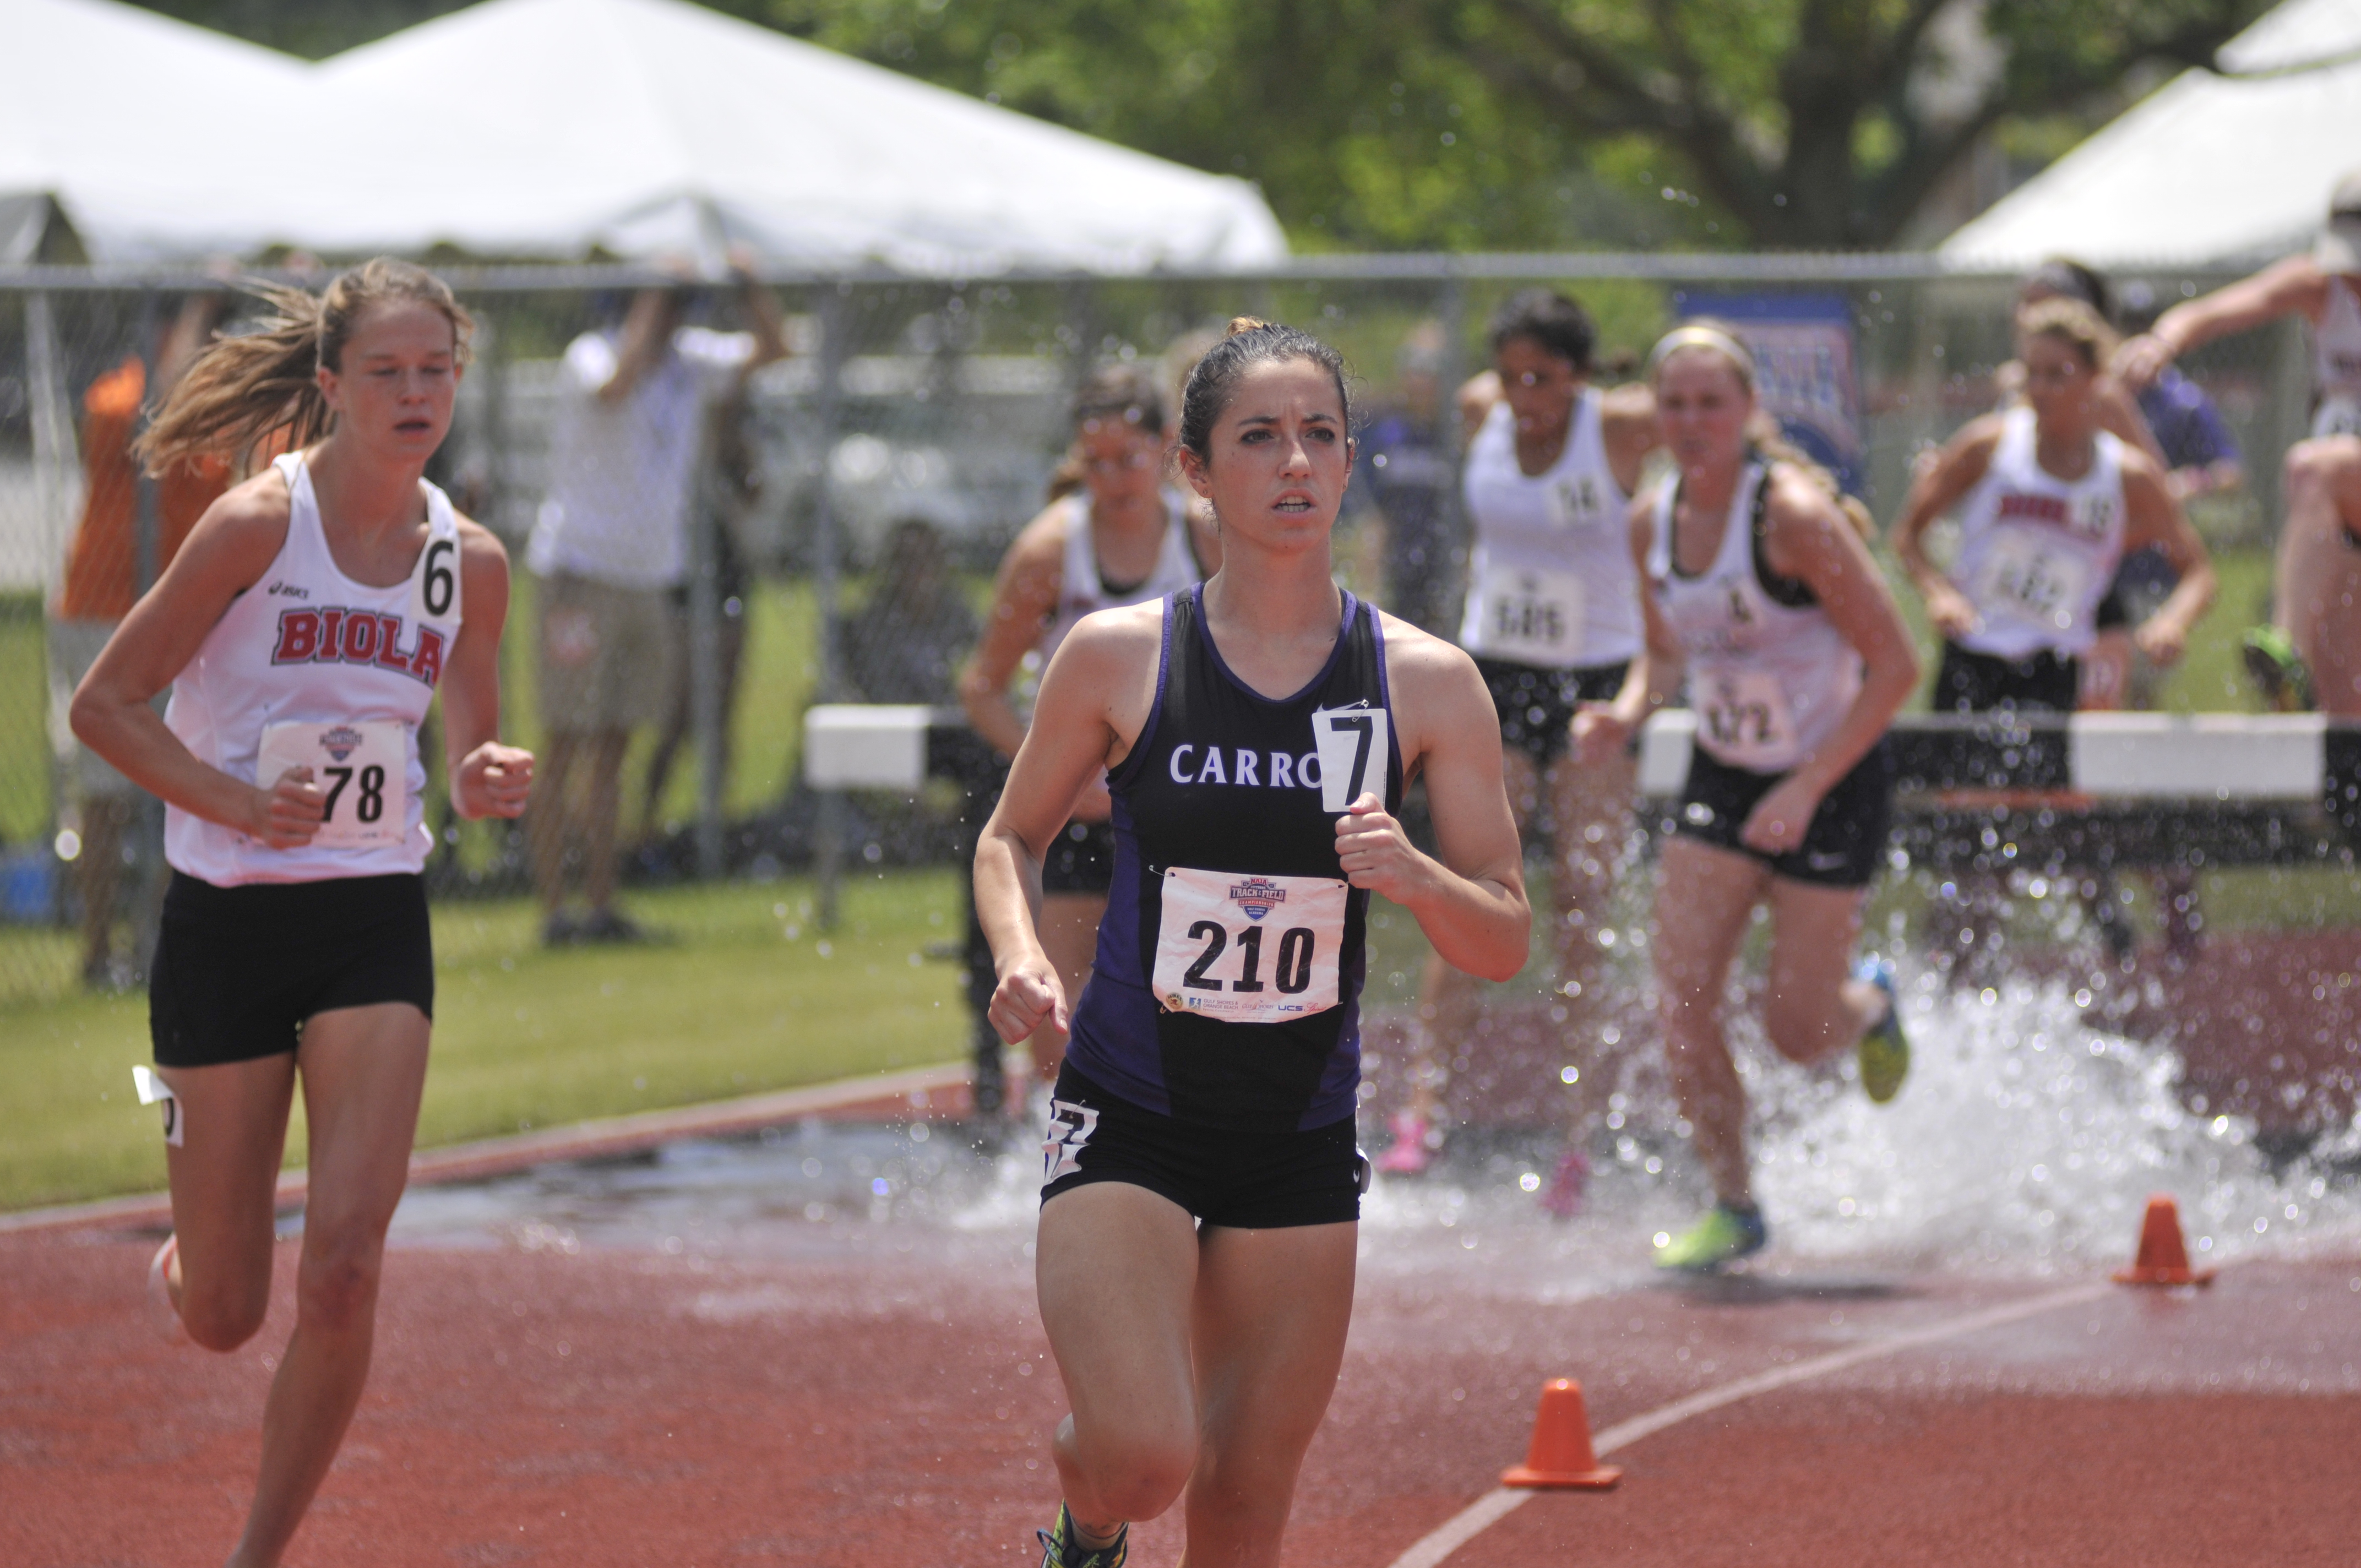 Leah Esposito Competing in the Steeple Chase